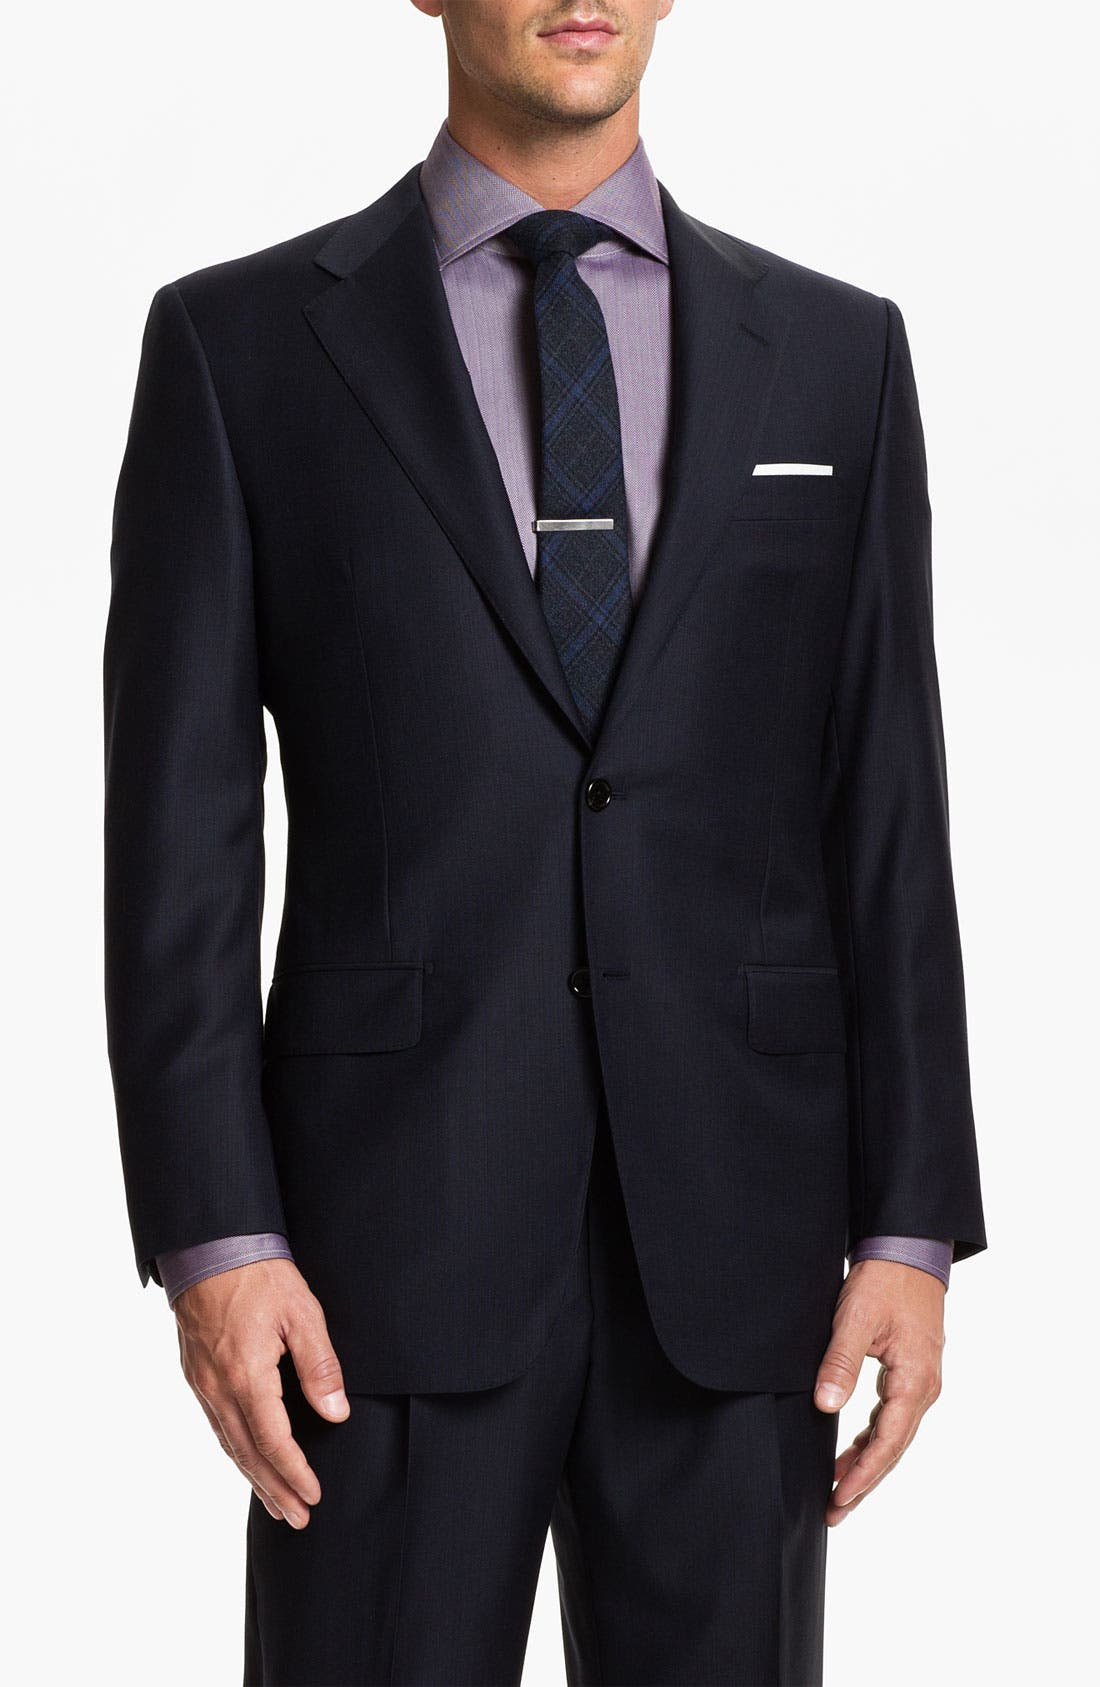 Alternate Image 1 Selected - Hickey Freeman 'A Series' Worsted Wool Suit